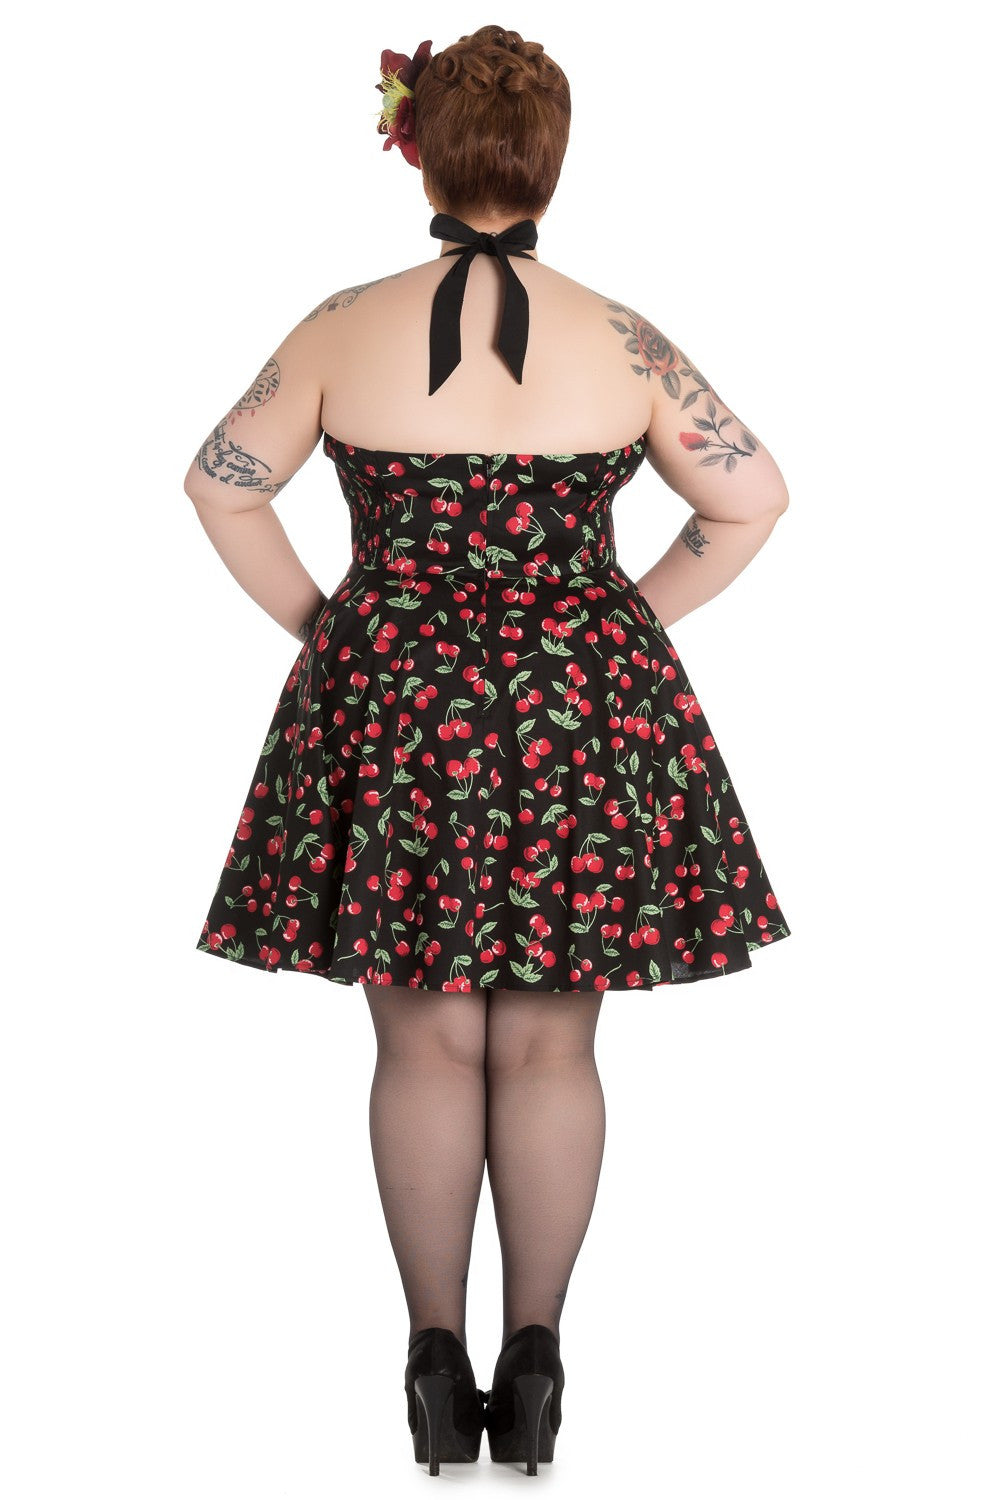 Cherry Pop Mini Dress (2XL-4XL)